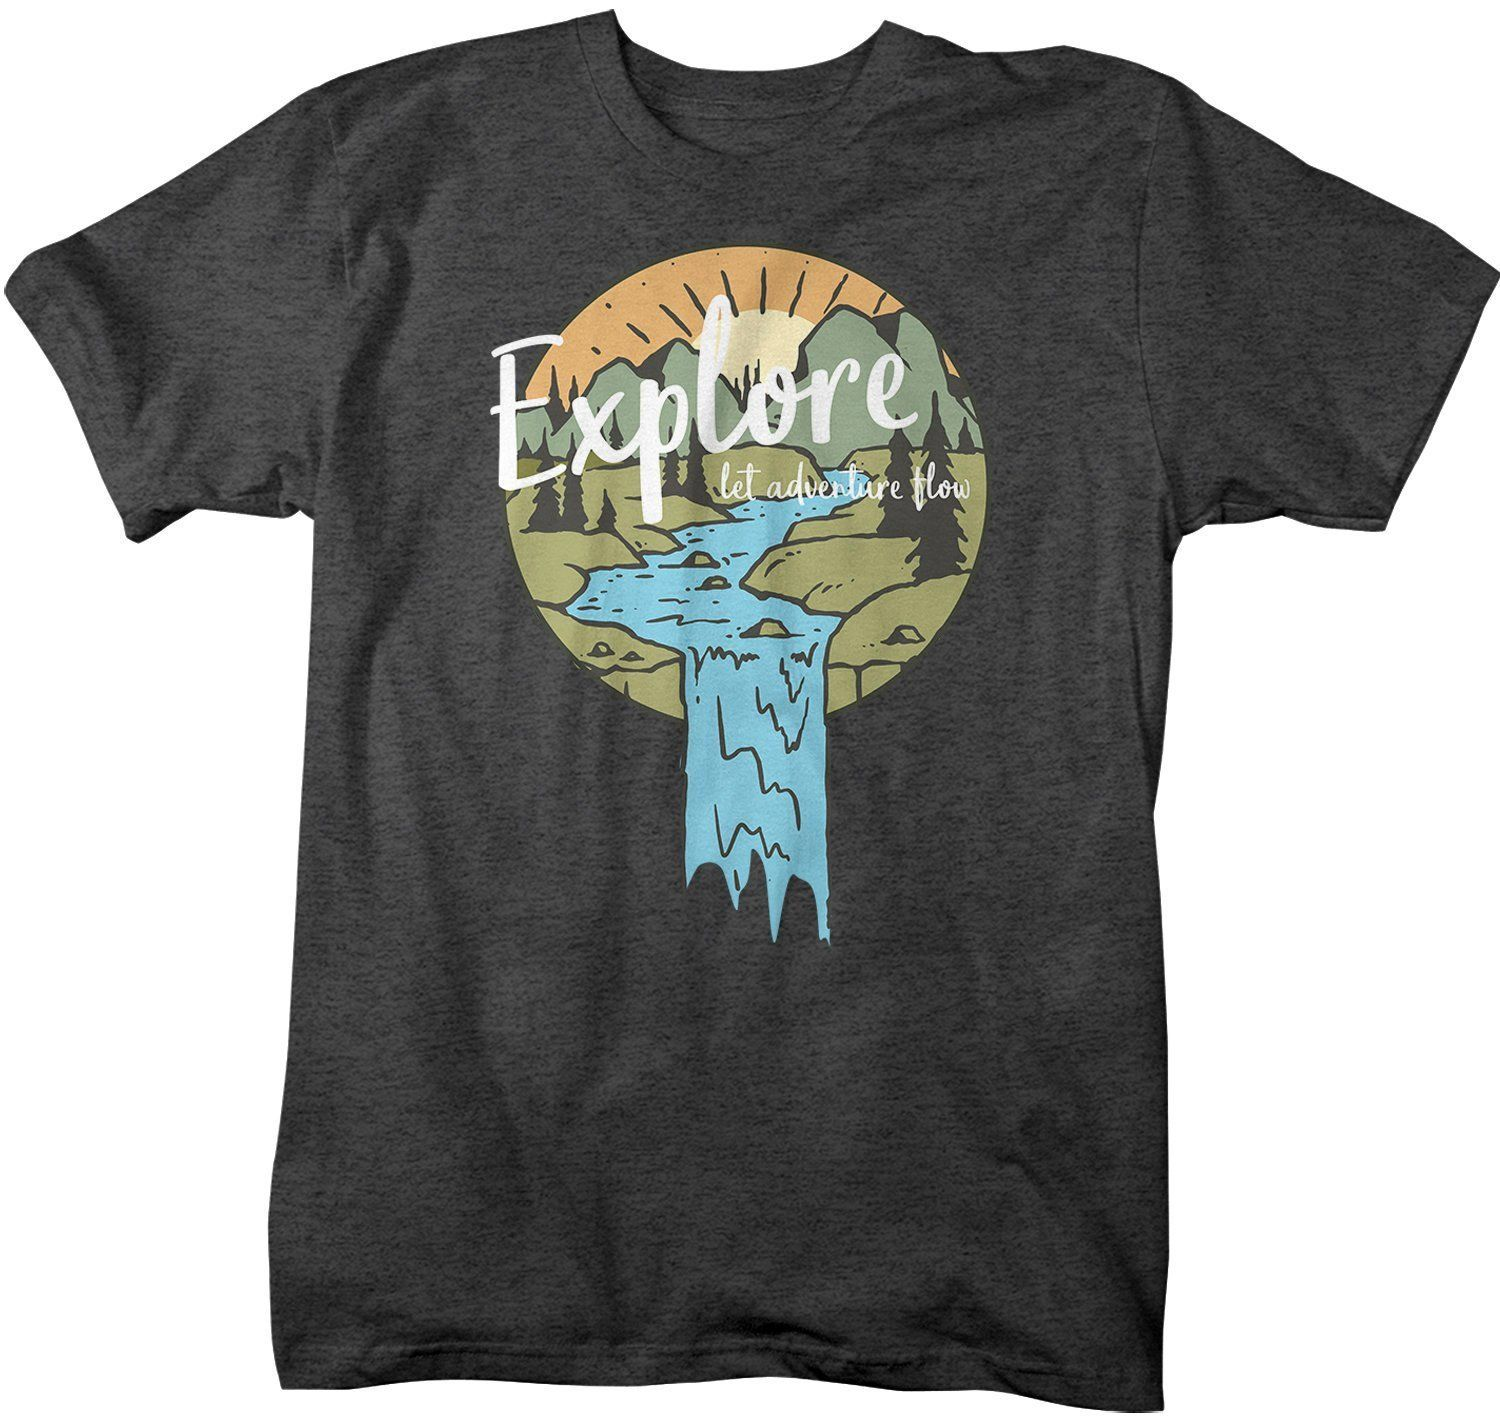 Men's Explore T-Shirt Let Adventure Flow Shirt Wanderlust Tshirt Camping Shirts Illustration Shirt Nature Shirts – Products